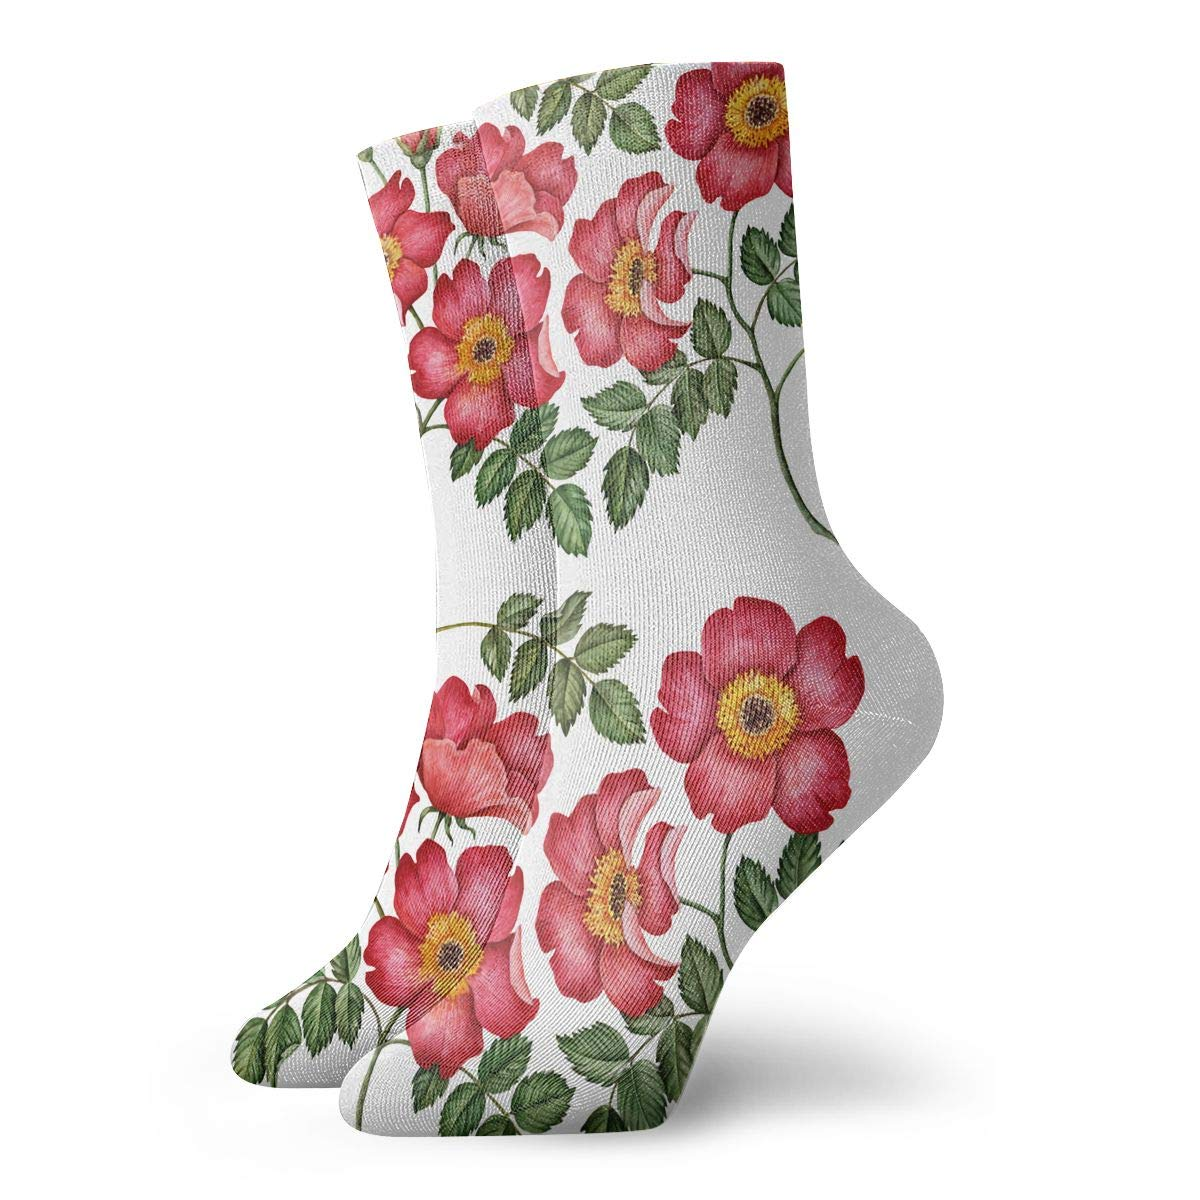 Watercolor Set Of Rose Hip Flowers And Leaves Fashion Dress Socks Short Socks Leisure Travel 11.8 Inch